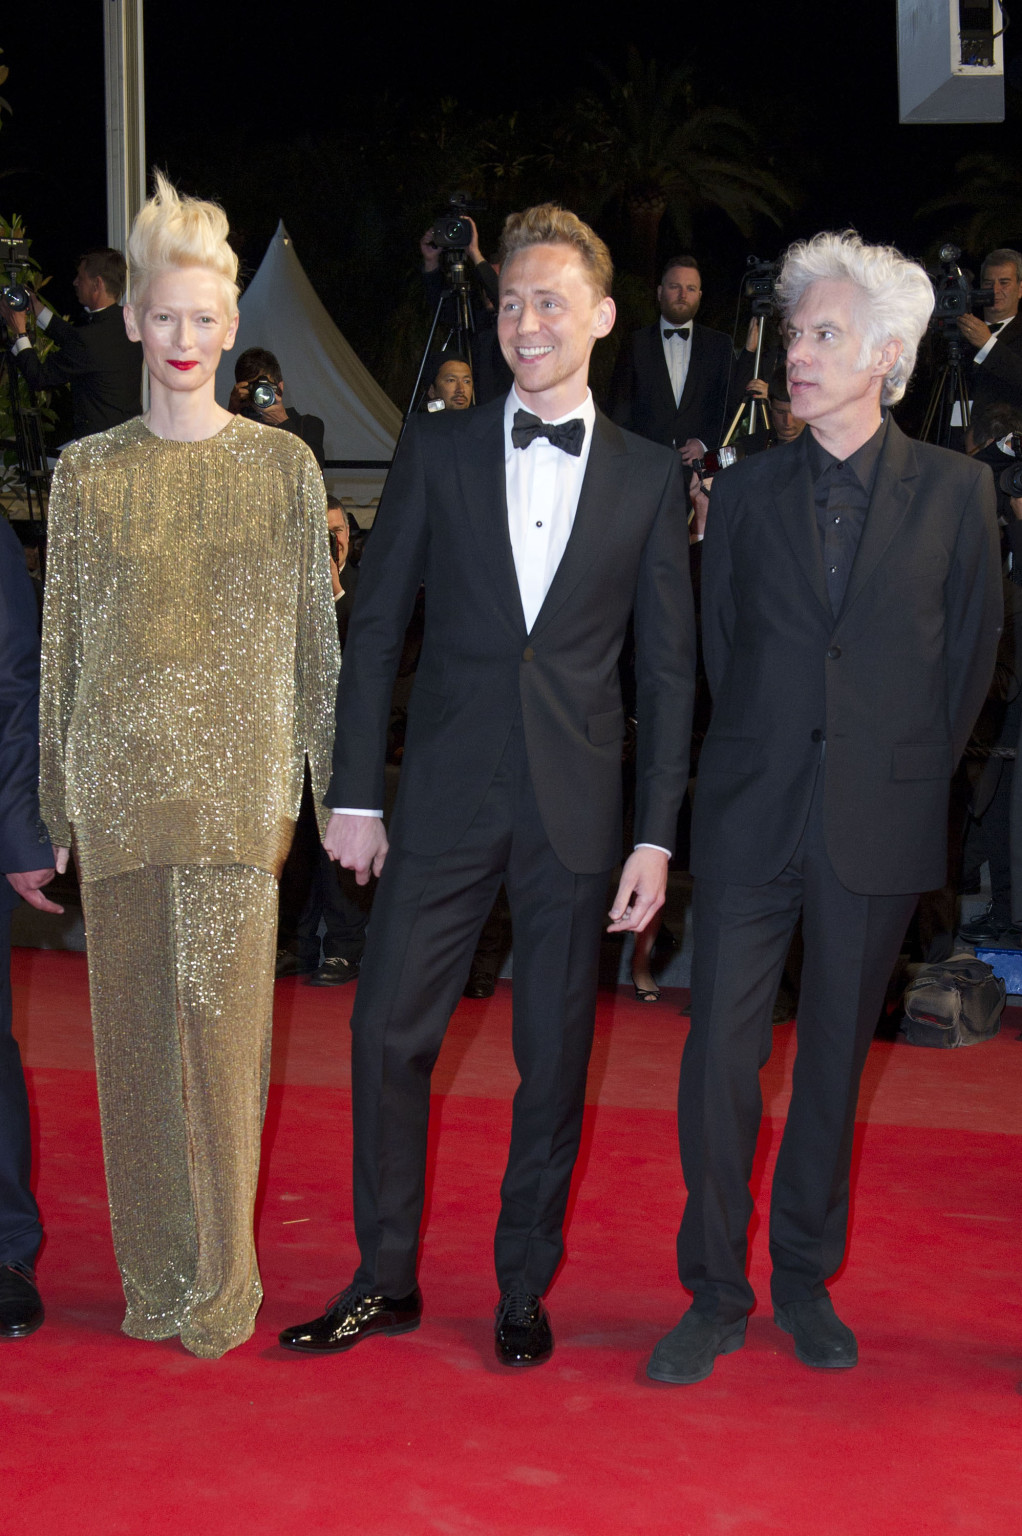 Jim Jarmusch, Tilda Swinton, Tom Hiddleston / 2013